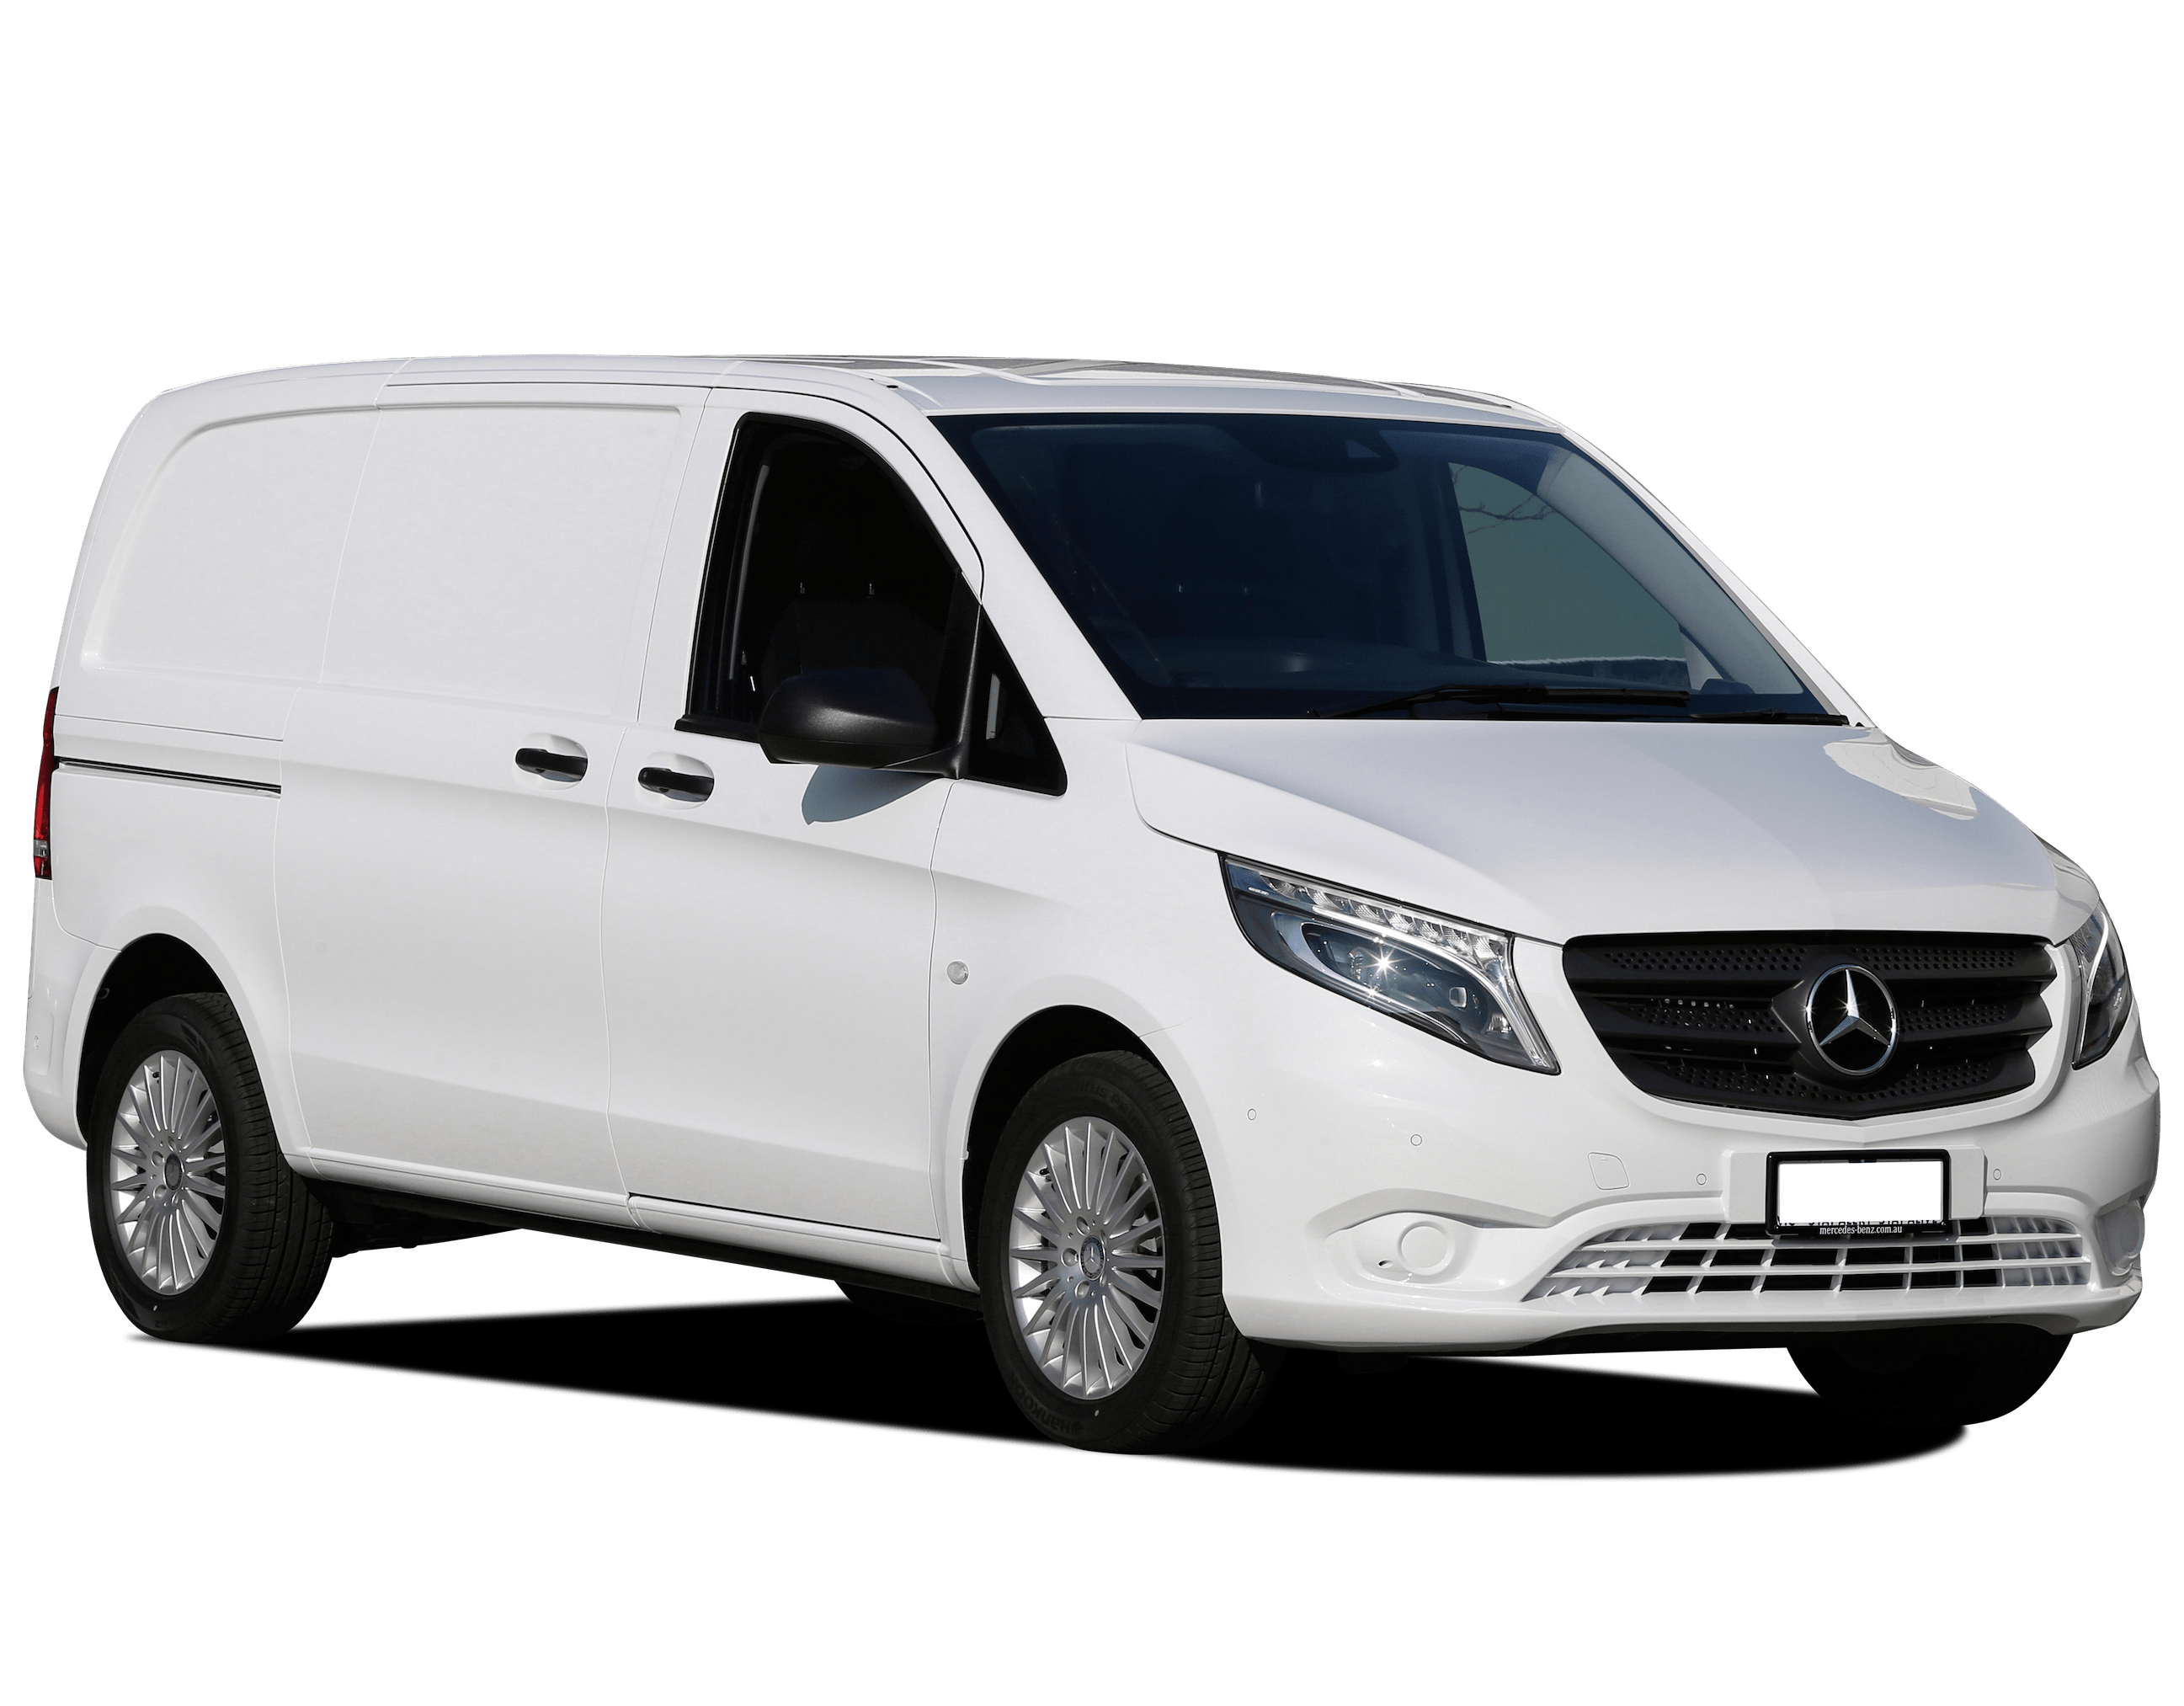 Mercedes Benz Vito Problems Reliability Issues Carsguide